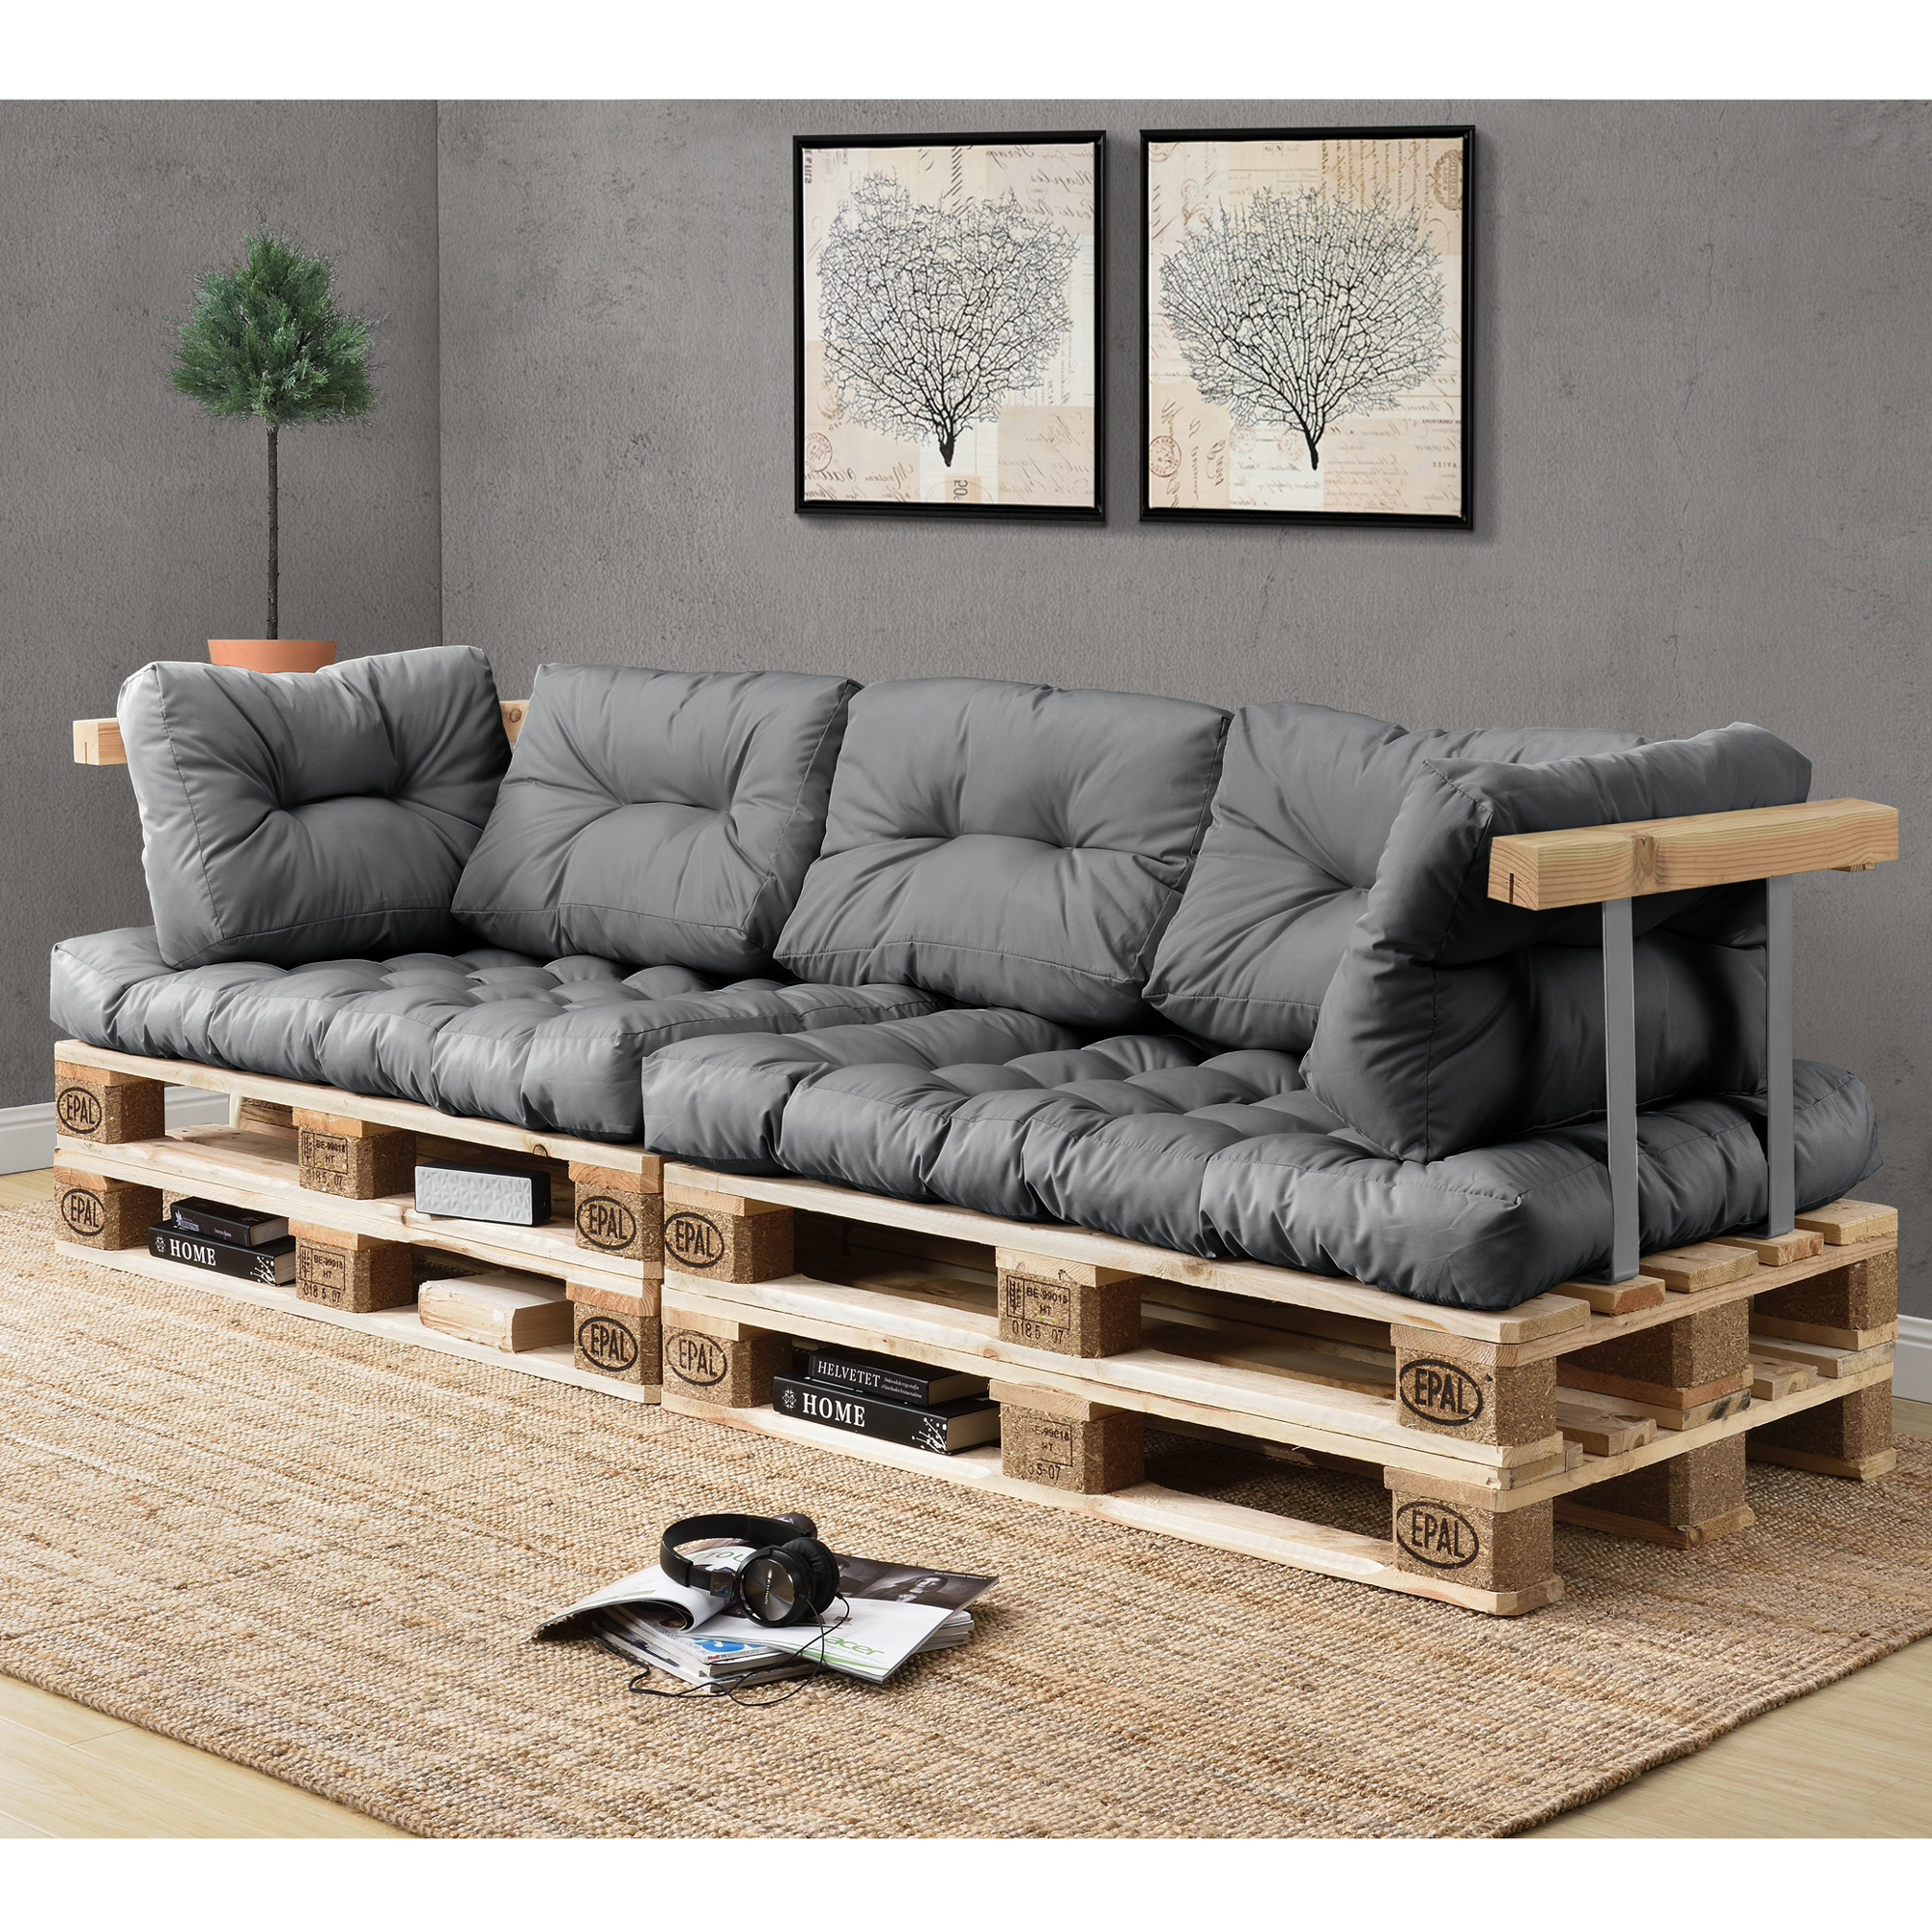 en-casa-BACK-REST-CUSHION-FOR-PALLET-COUCH-ONLY-OUTDOOR-WATERPROOF-L-GREY